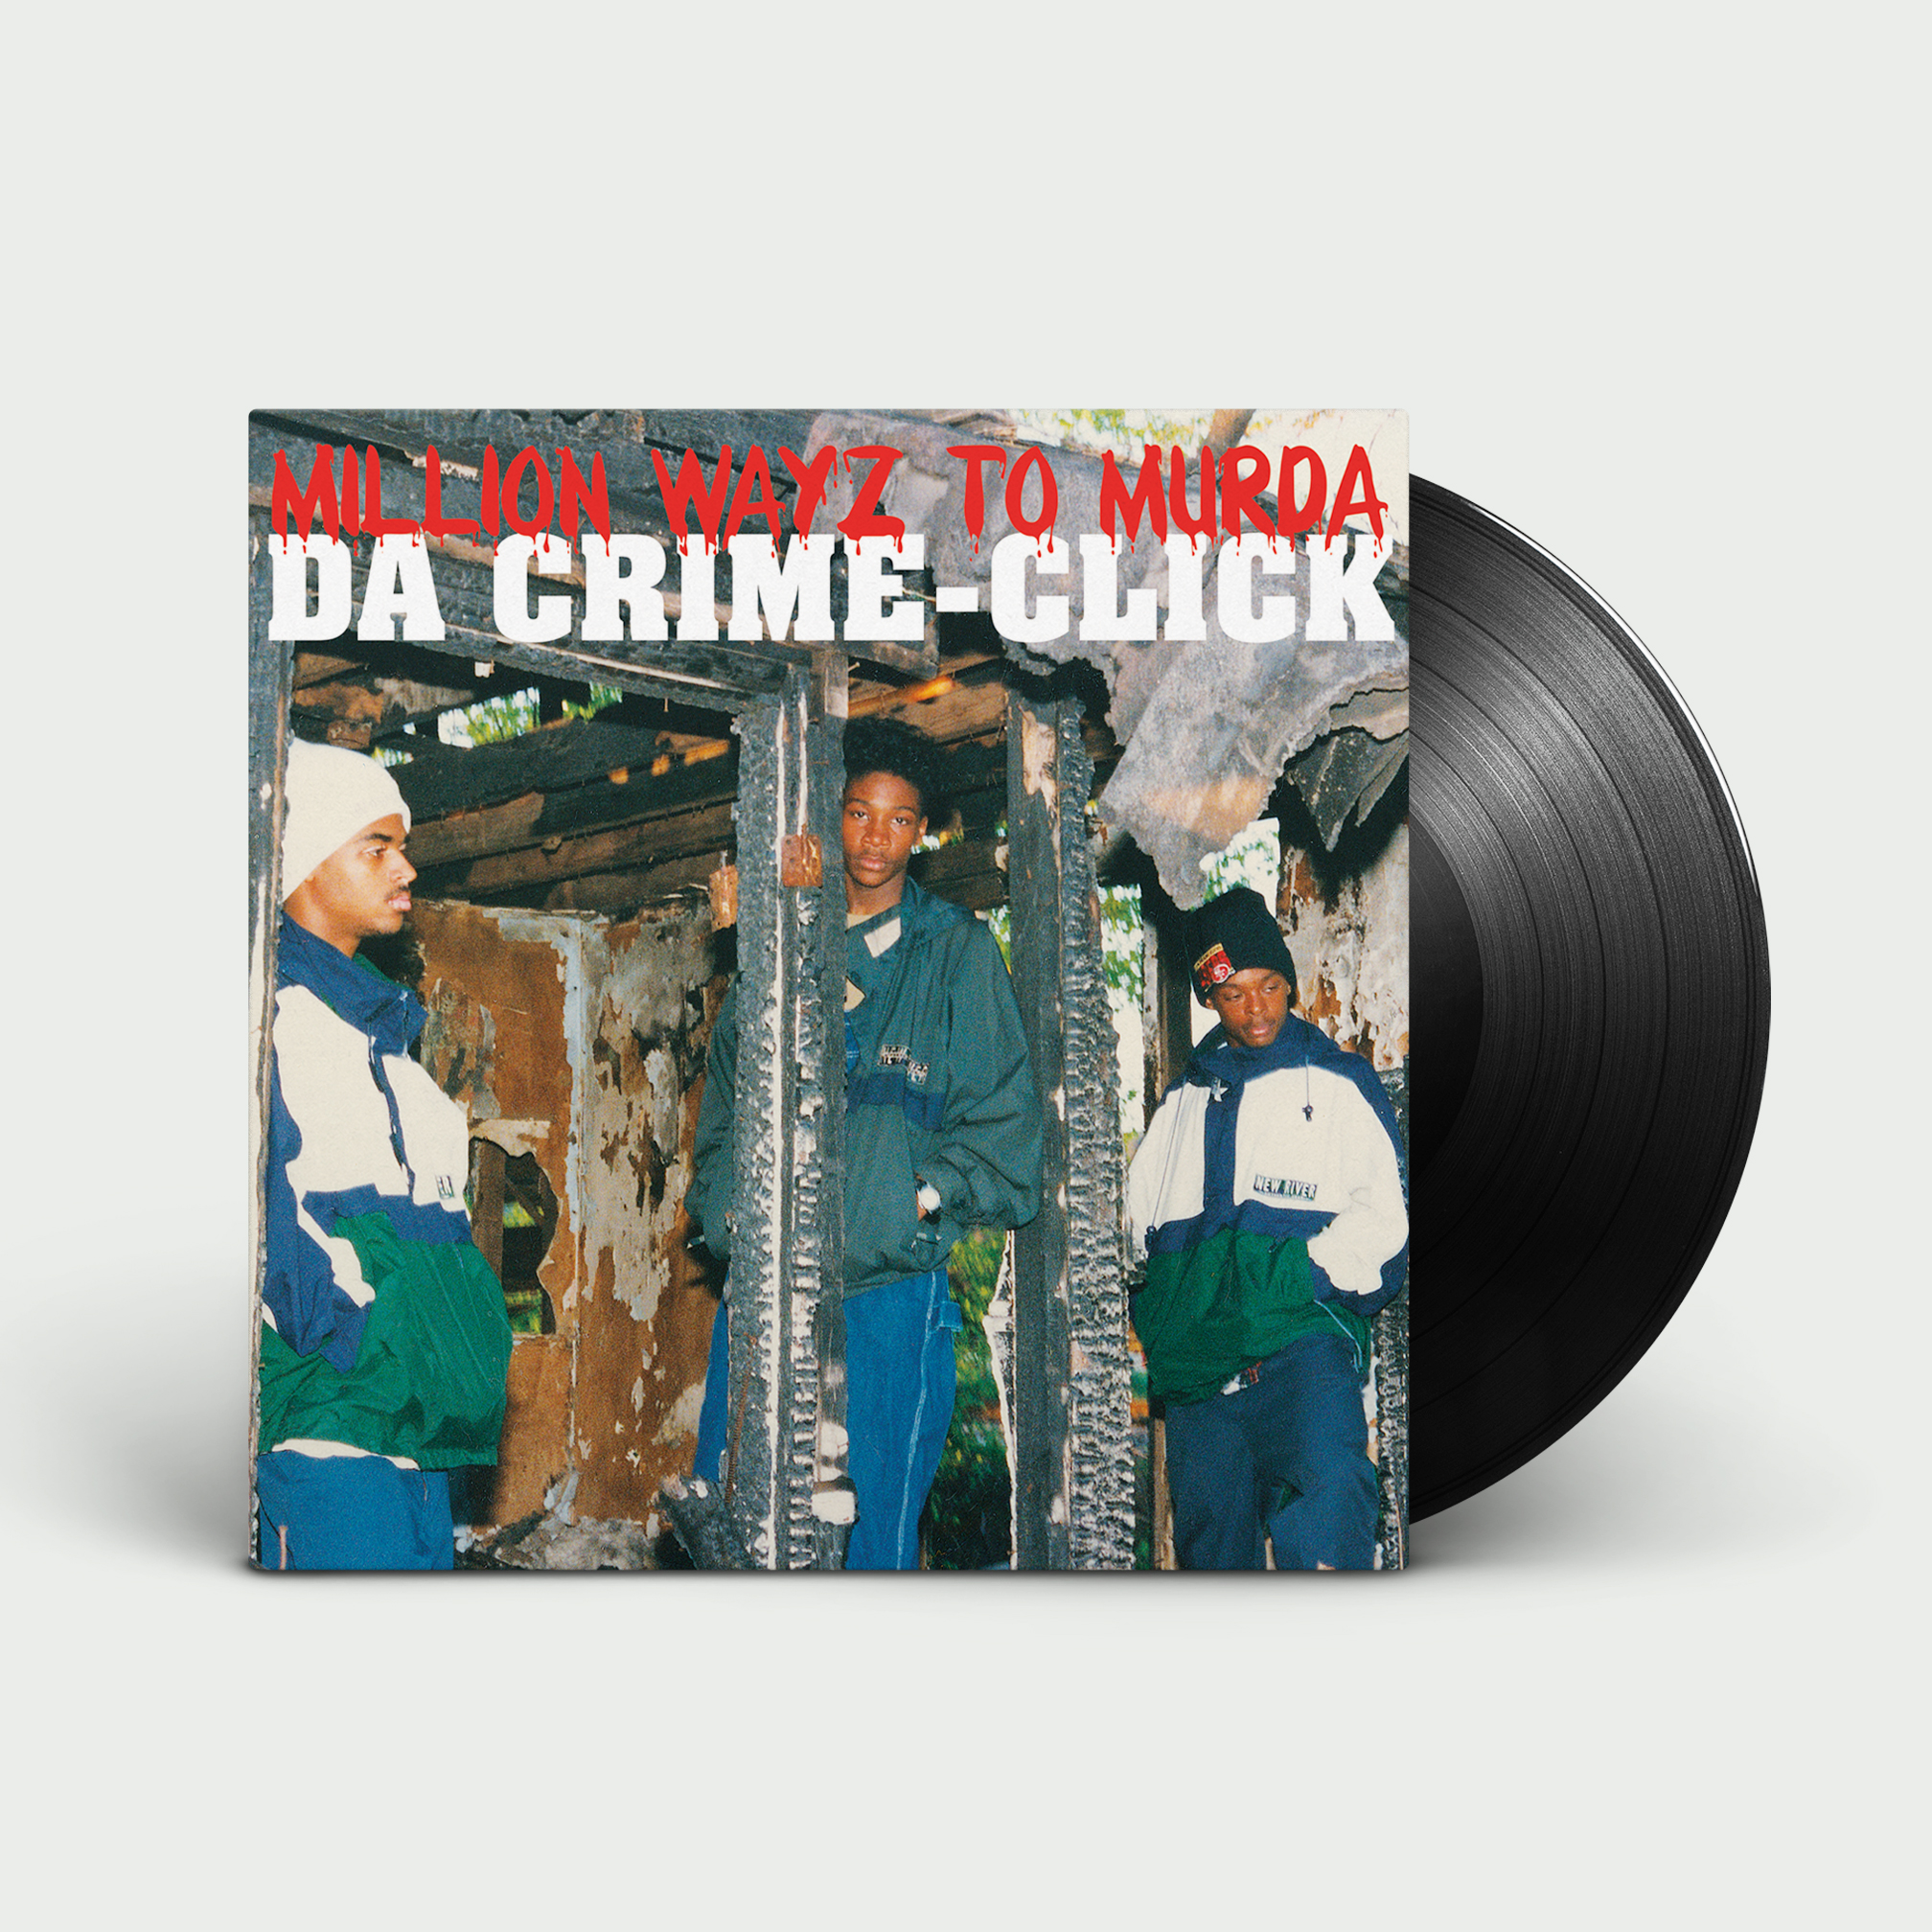 Da Crime Click - Million Wayz To Murda (Vinyl)